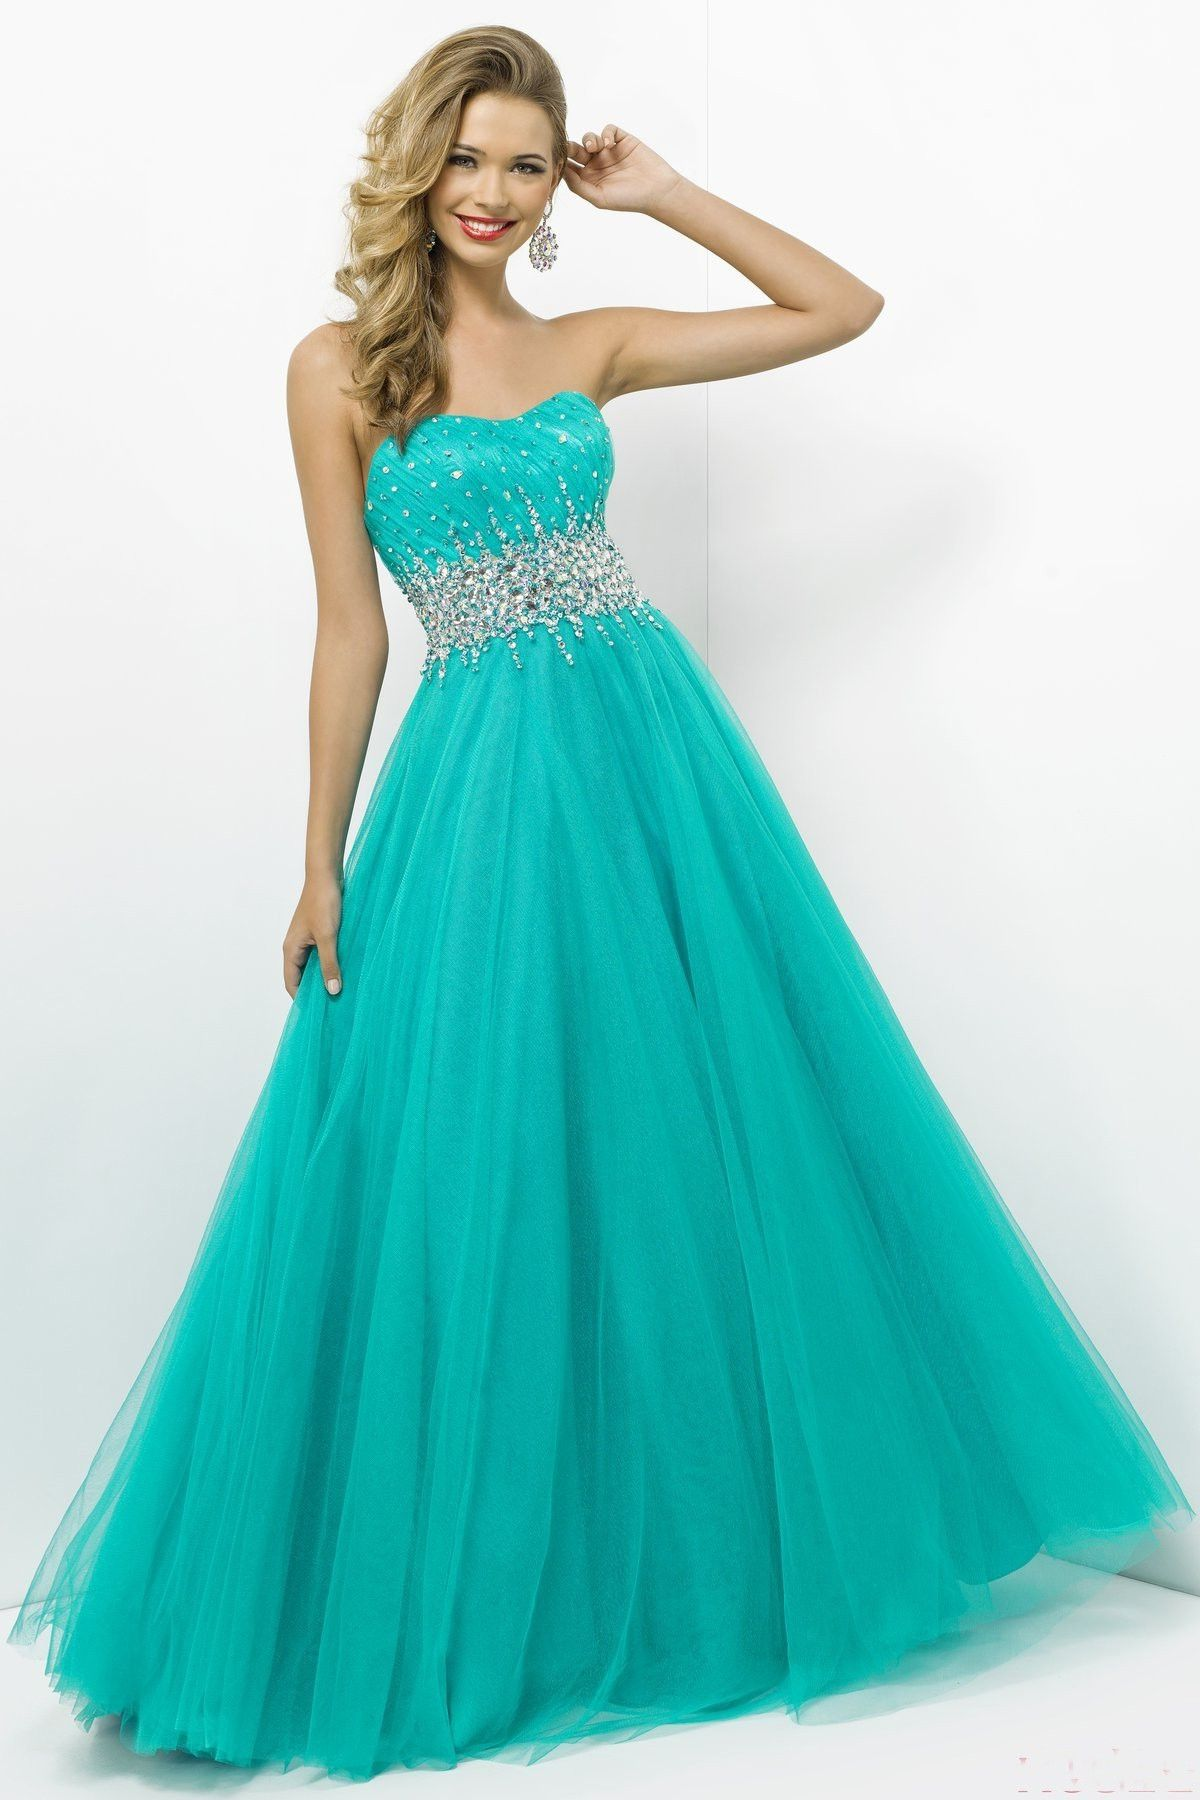 prom dresses prom dresses for teens prom dresses long 2014 ...